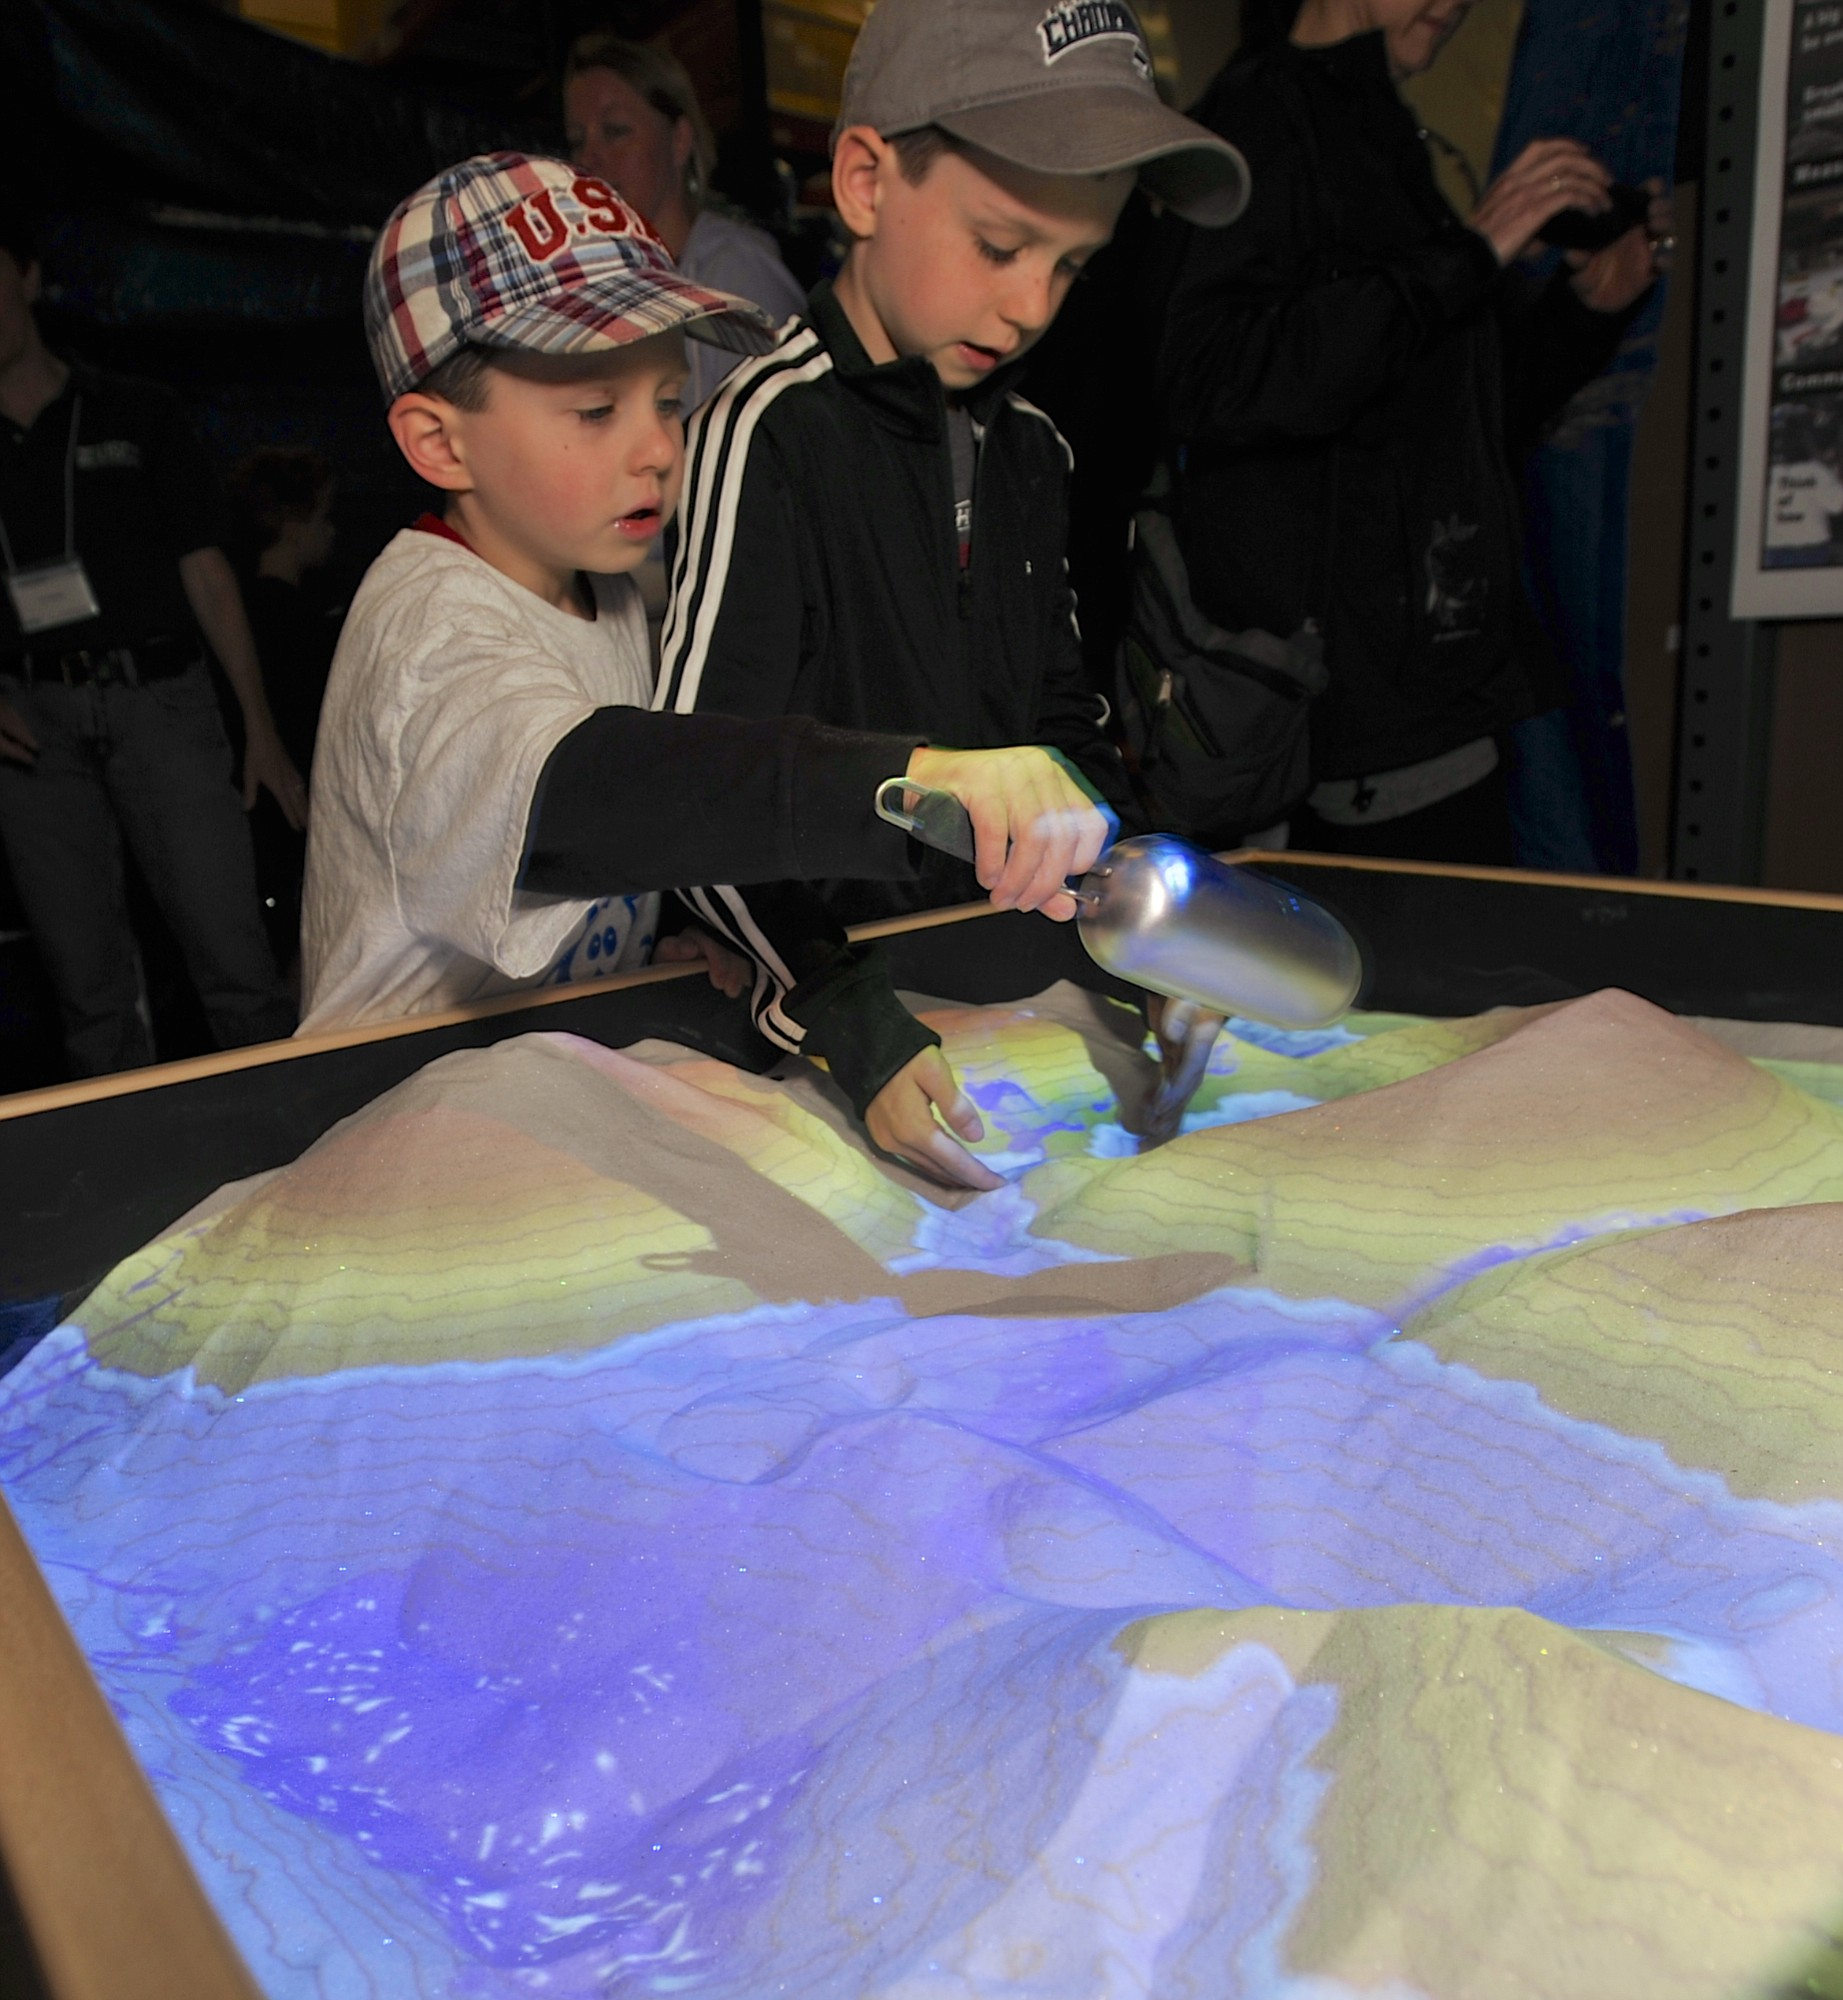 Aaron, left, and Alex Erickson play in an augmented reality sandbox, which projects topography contours on shifting sand piles, during the U.S. Geological Survey's open house at the Cascades Volcano Observatory in east Vancouver.